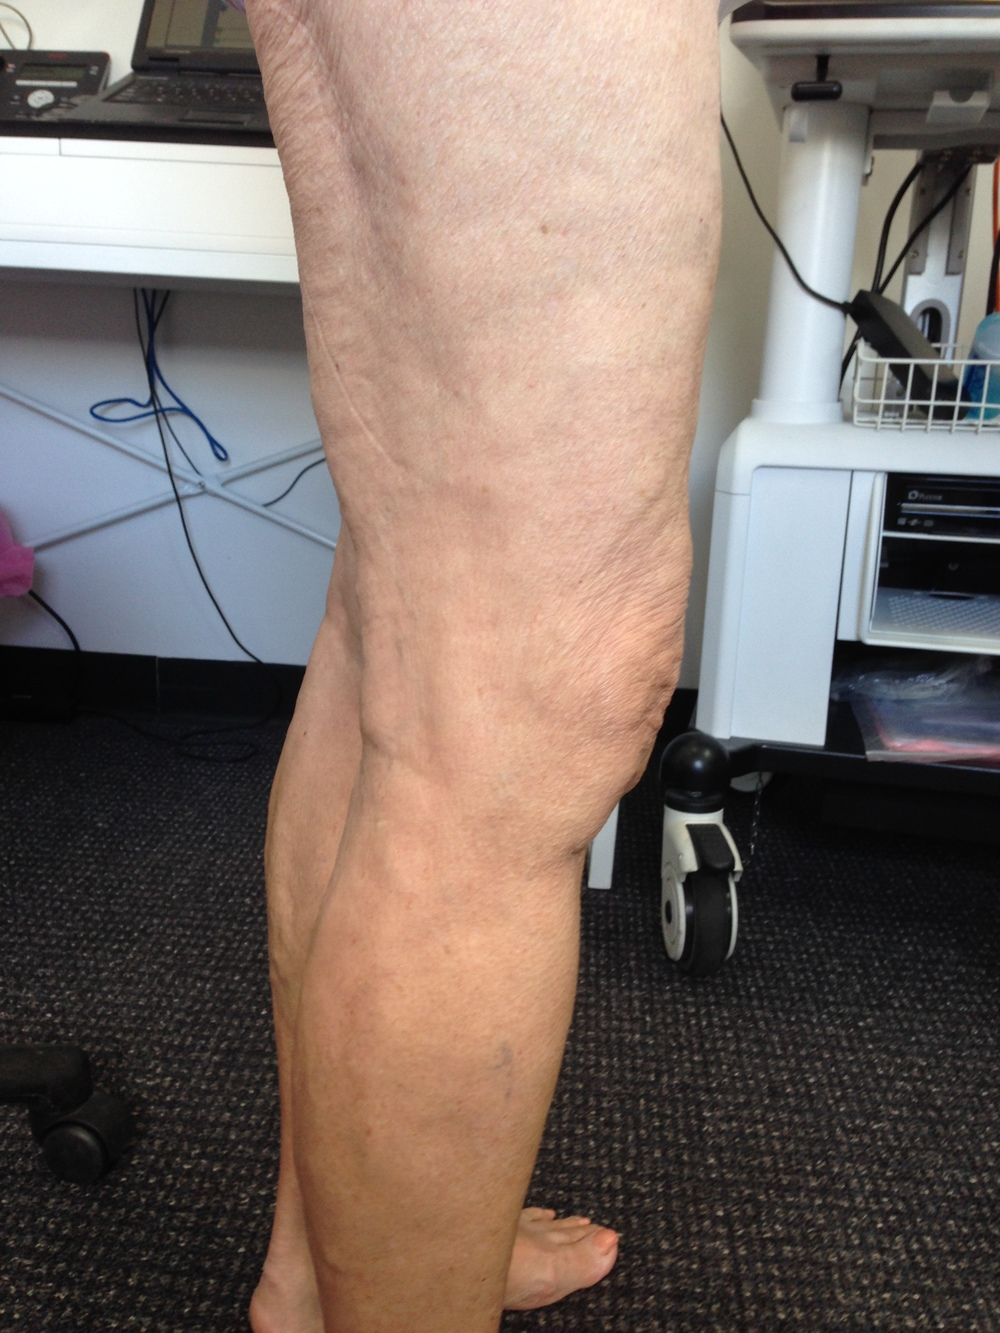 Treatment: Ultrasound Guided Sclerotherapy at The Leg Vein Doctor - 6 months.